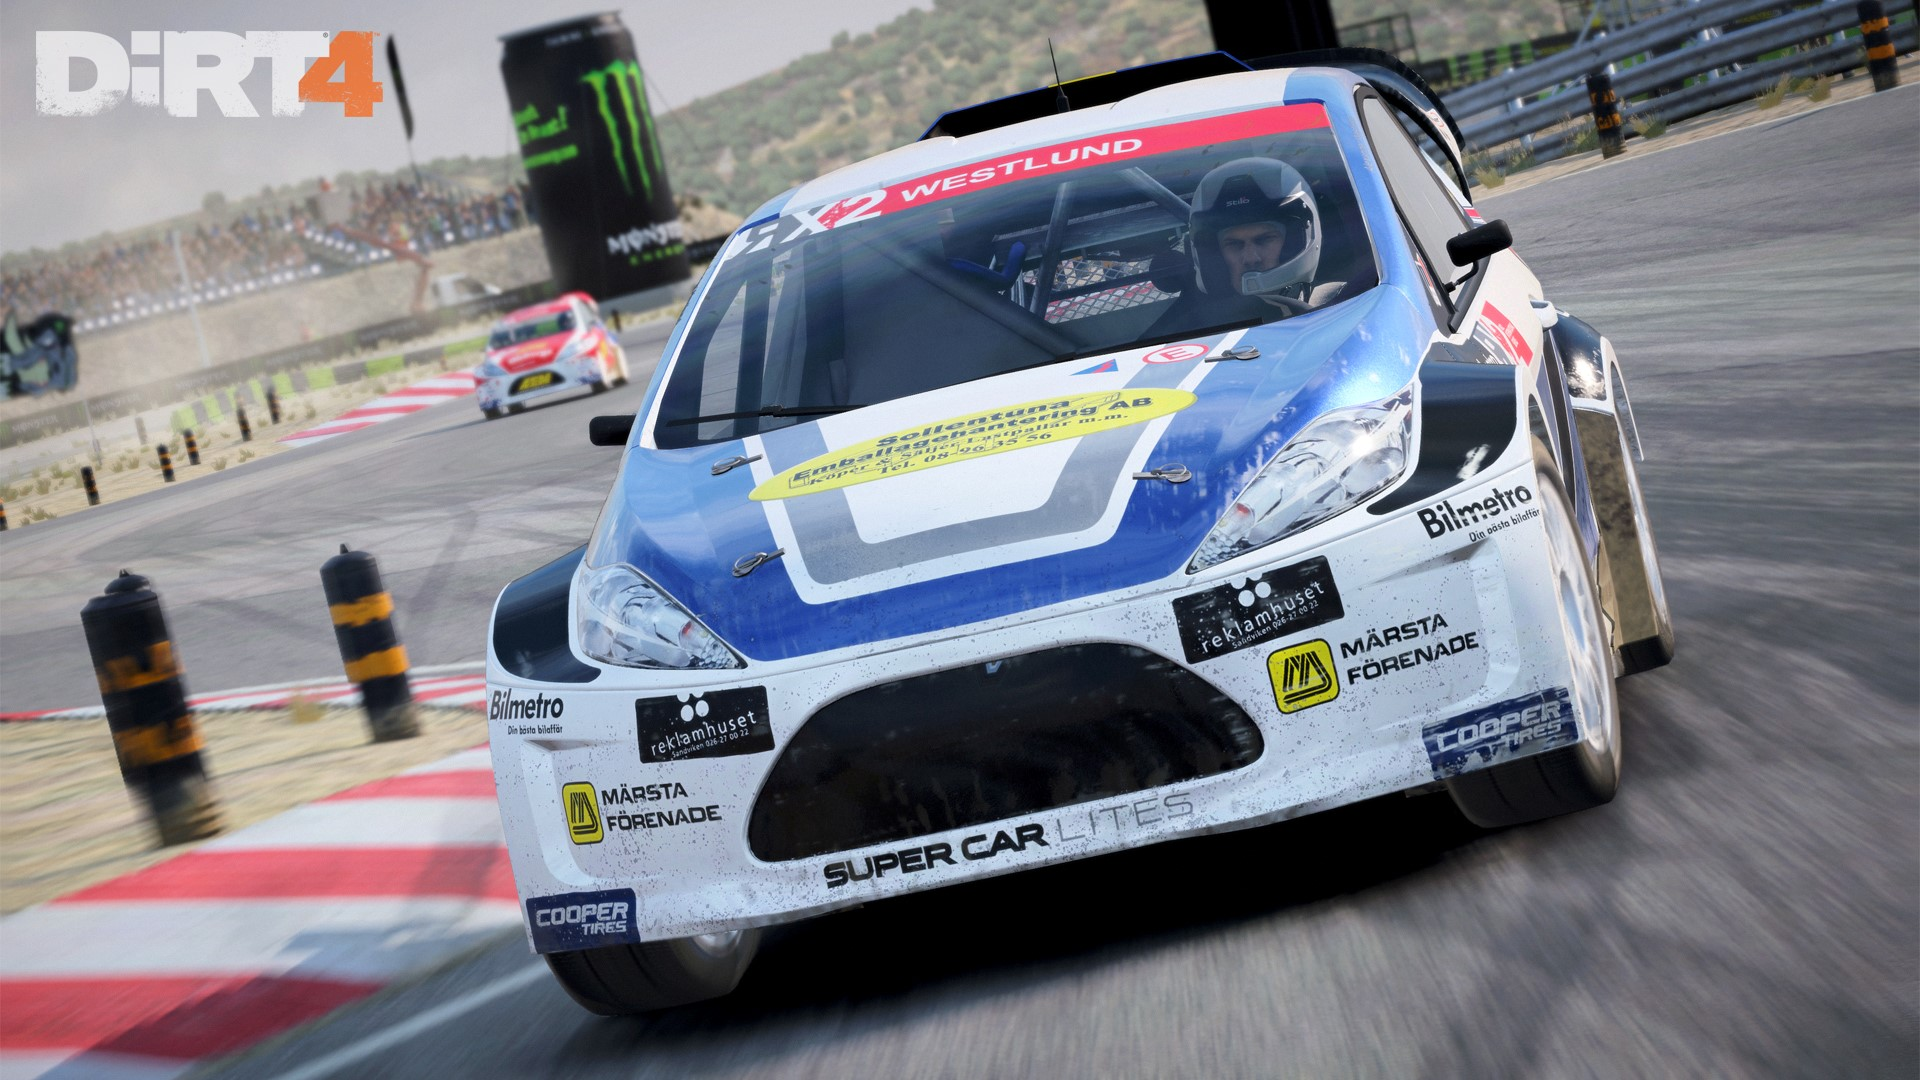 Dirt 4 3 Playm De